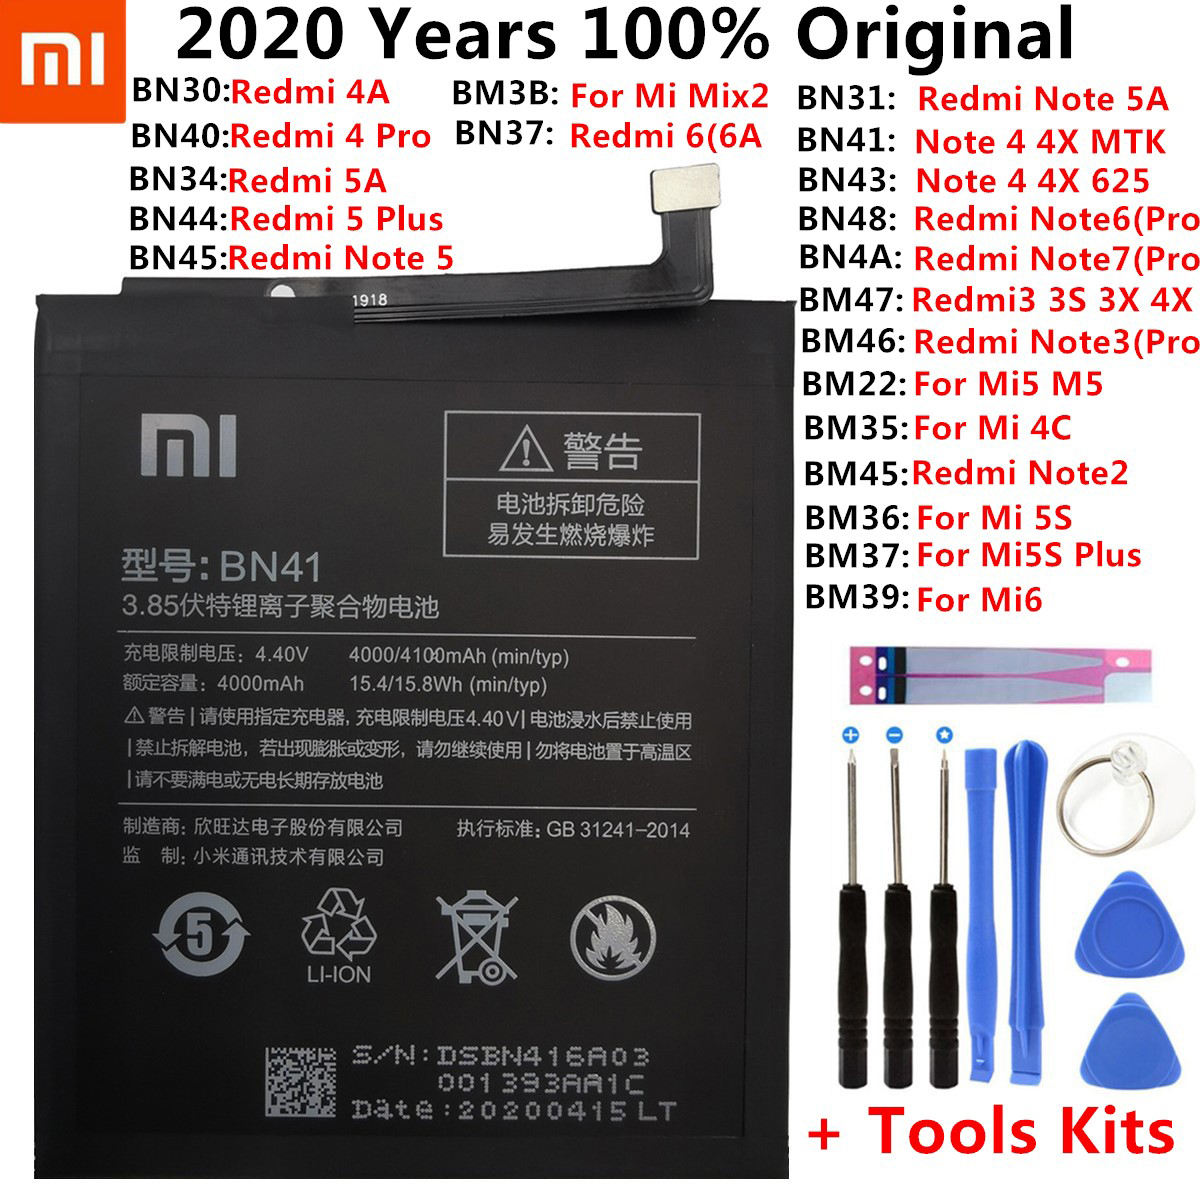 Xiao <font><b>Mi</b></font> Original <font><b>Battery</b></font> Xiaomi Redmi Note 3 3S 3X 4 4X 4A 5 5A 6 6A 7 7A 8 Pro Mi5 <font><b>MIX</b></font> 2 <font><b>2S</b></font> <font><b>Mi</b></font> Max 2 3 Mi4C Mi5S Plus <font><b>Batteries</b></font> image